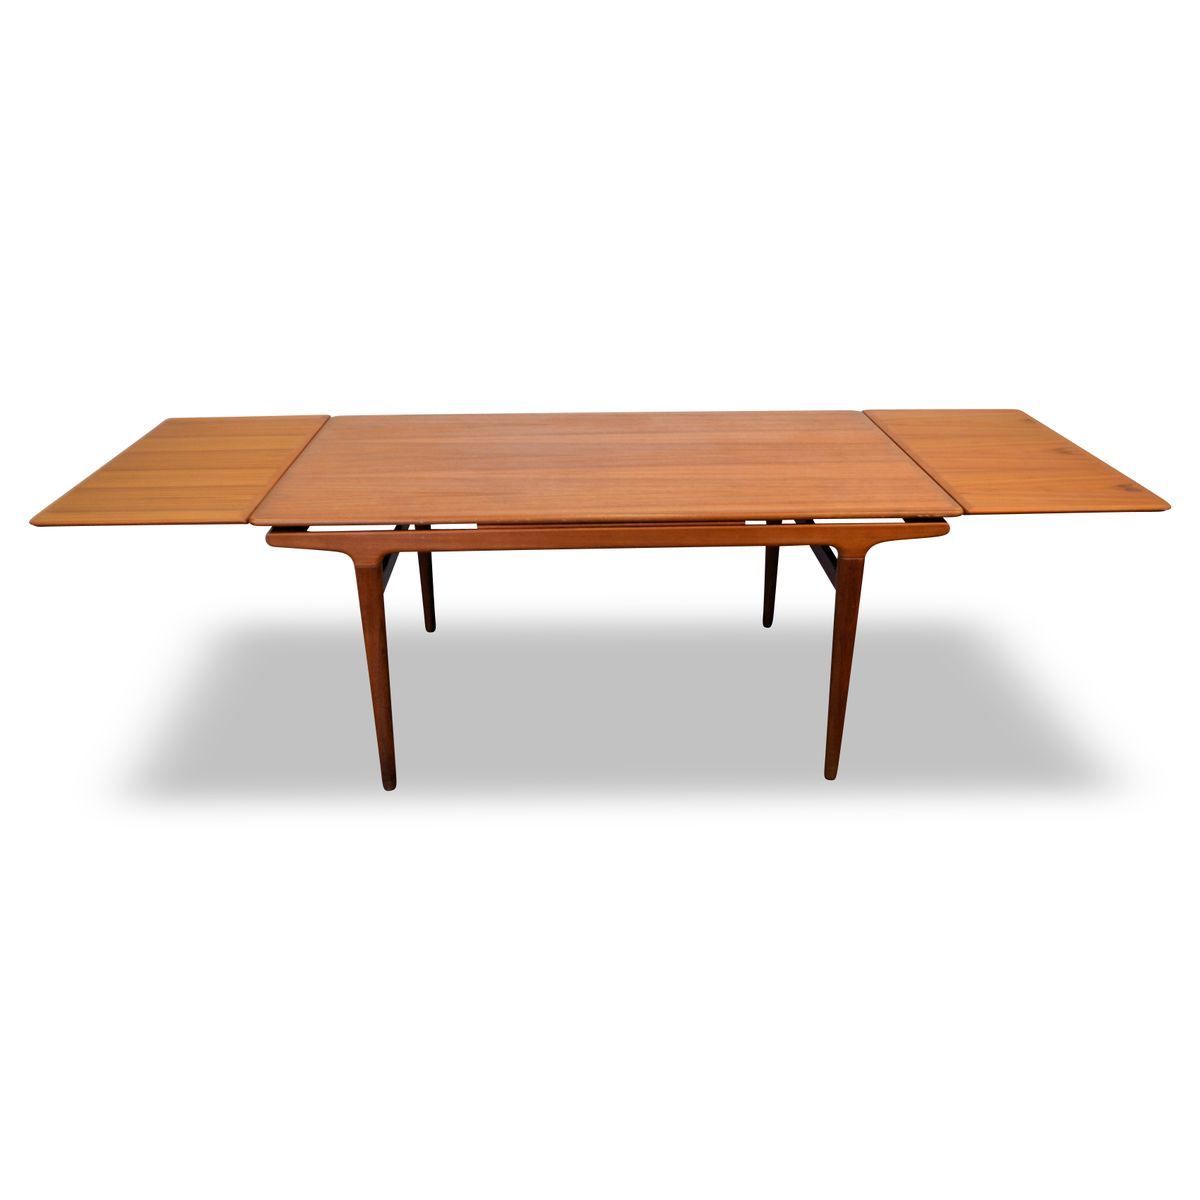 Vintage Teak Extendable Dining Table by Johannes Andersen  : vintage teak extendable dining table by johannes andersen for uldum mobelfabrik 7 from www.pamono.com size 1200 x 1200 jpeg 31kB